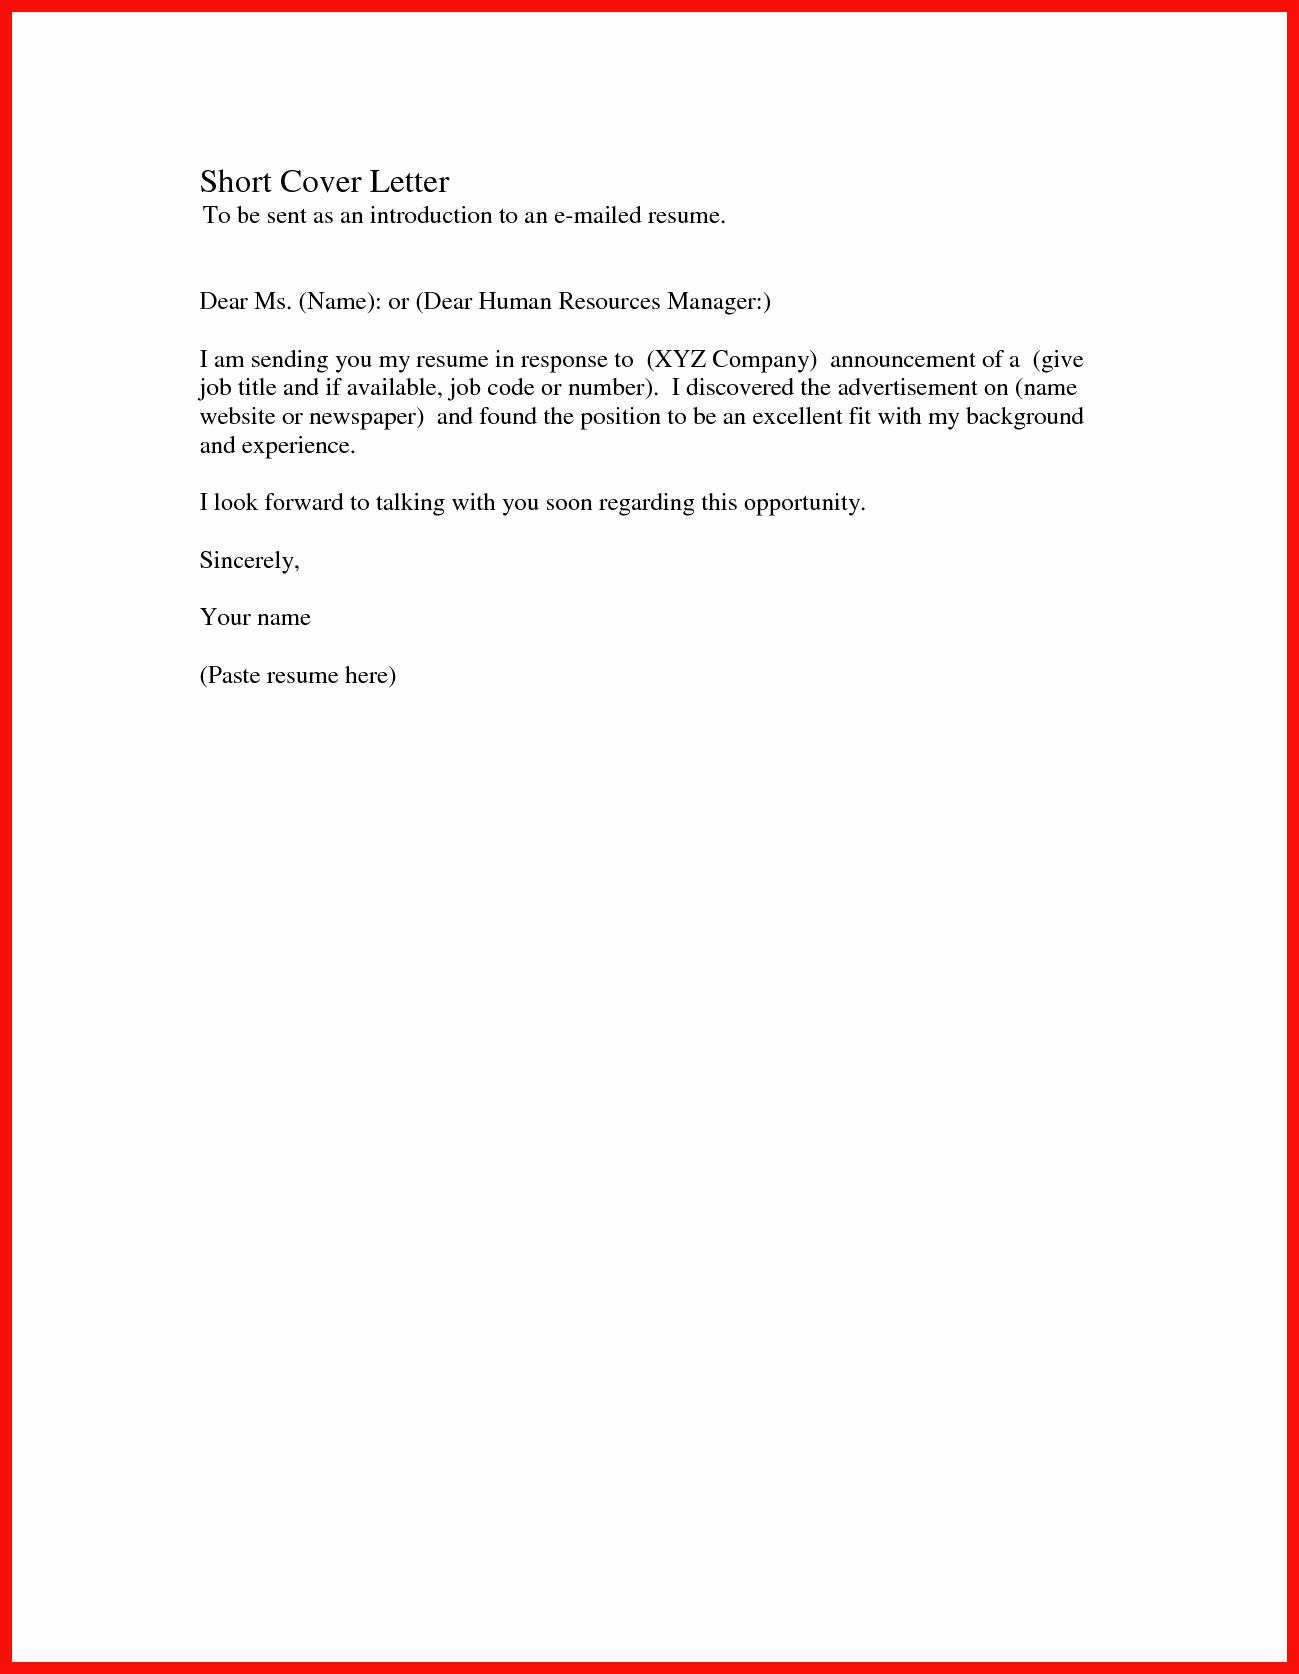 Cover Letter for First Job